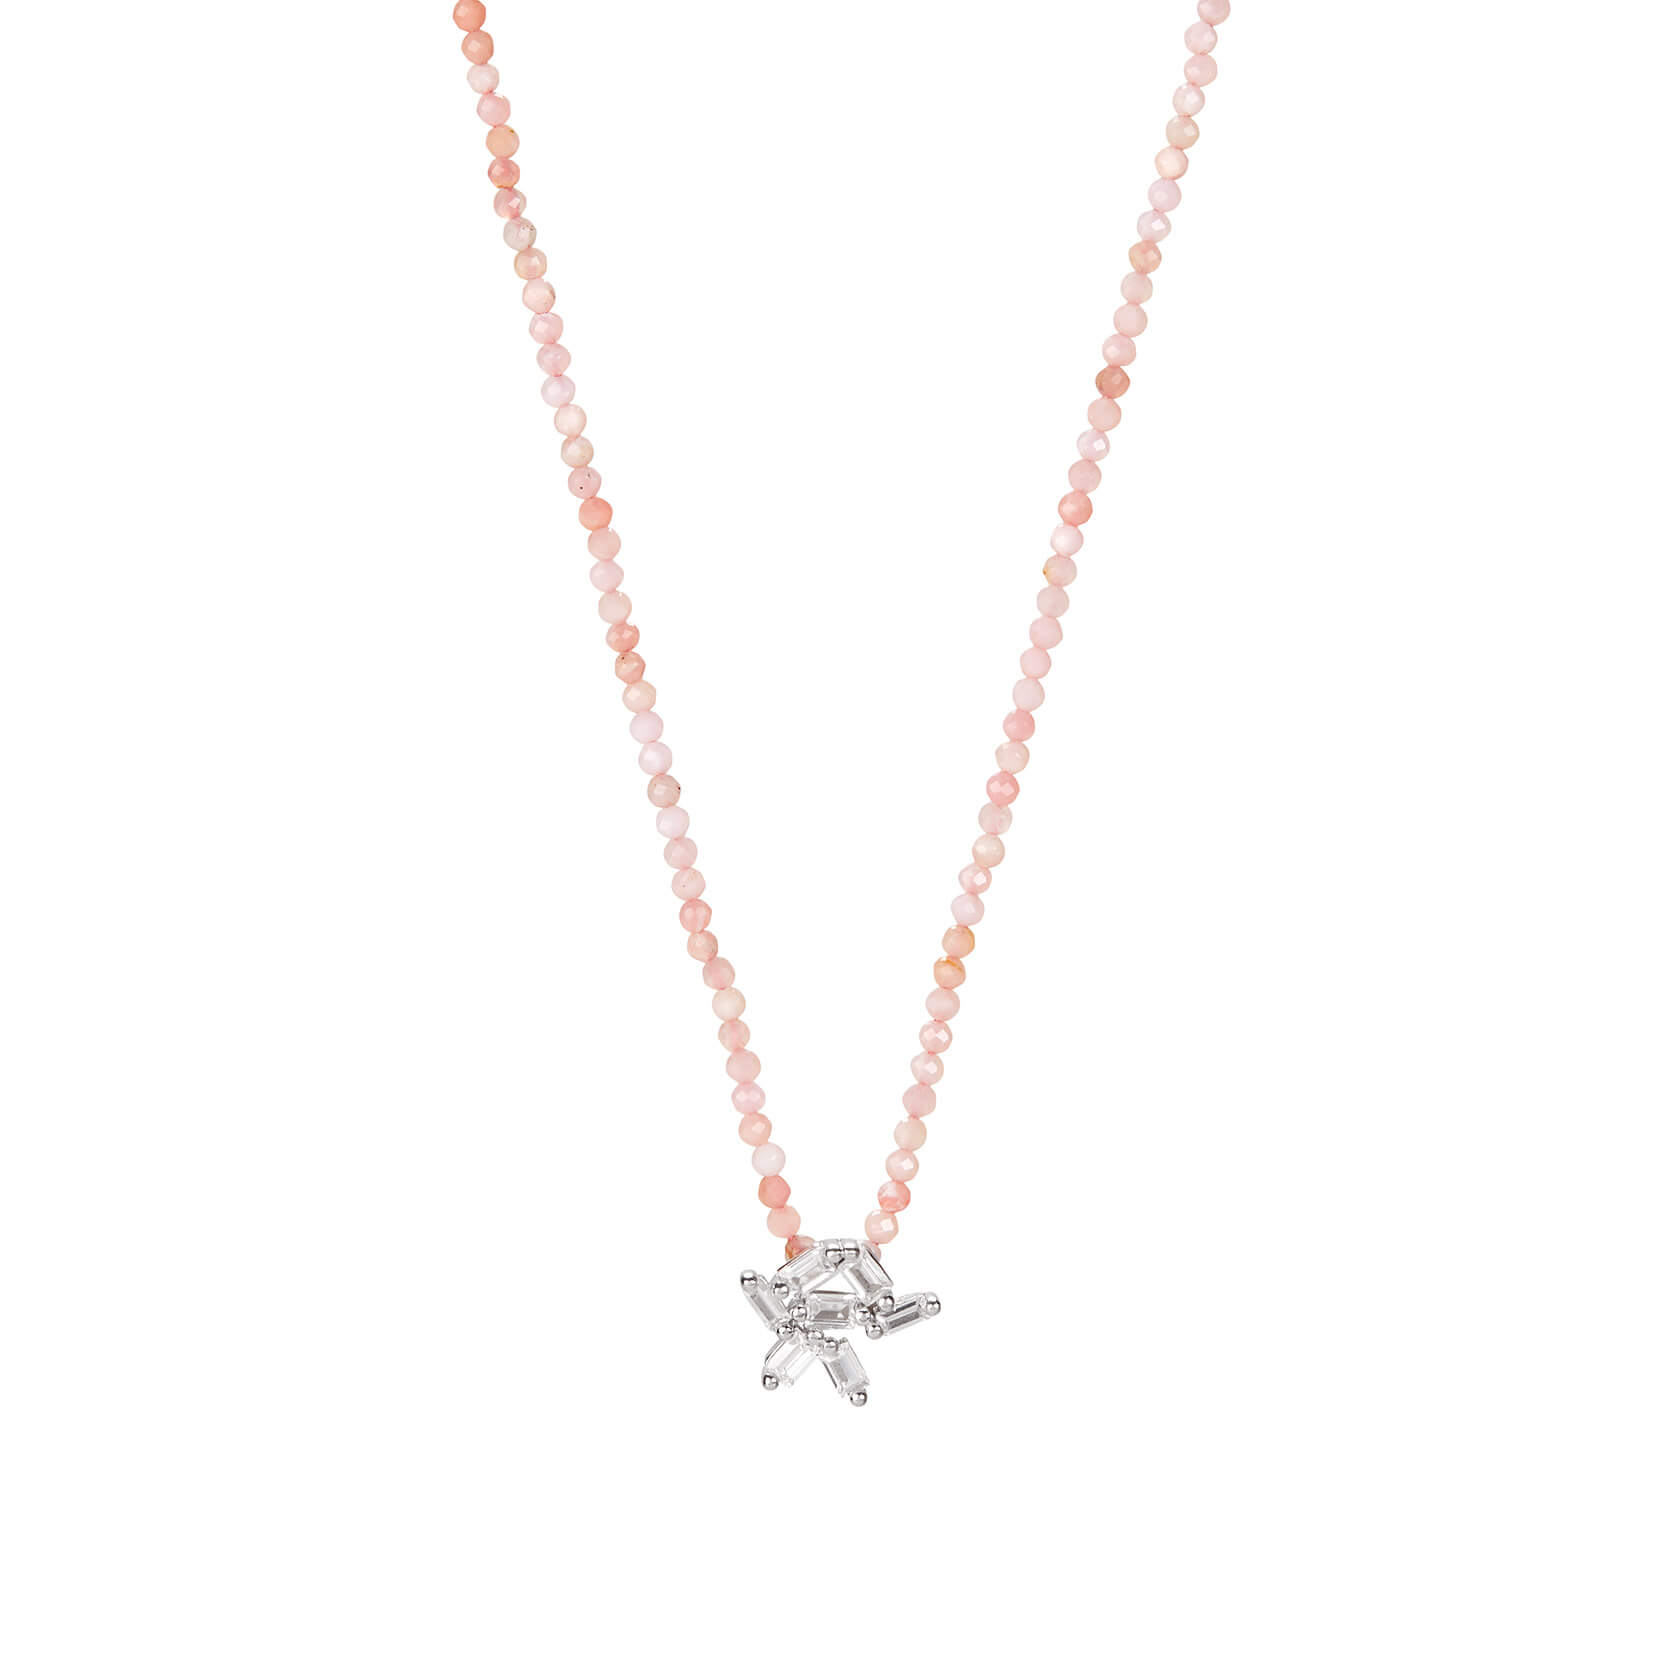 Rose opal short necklace